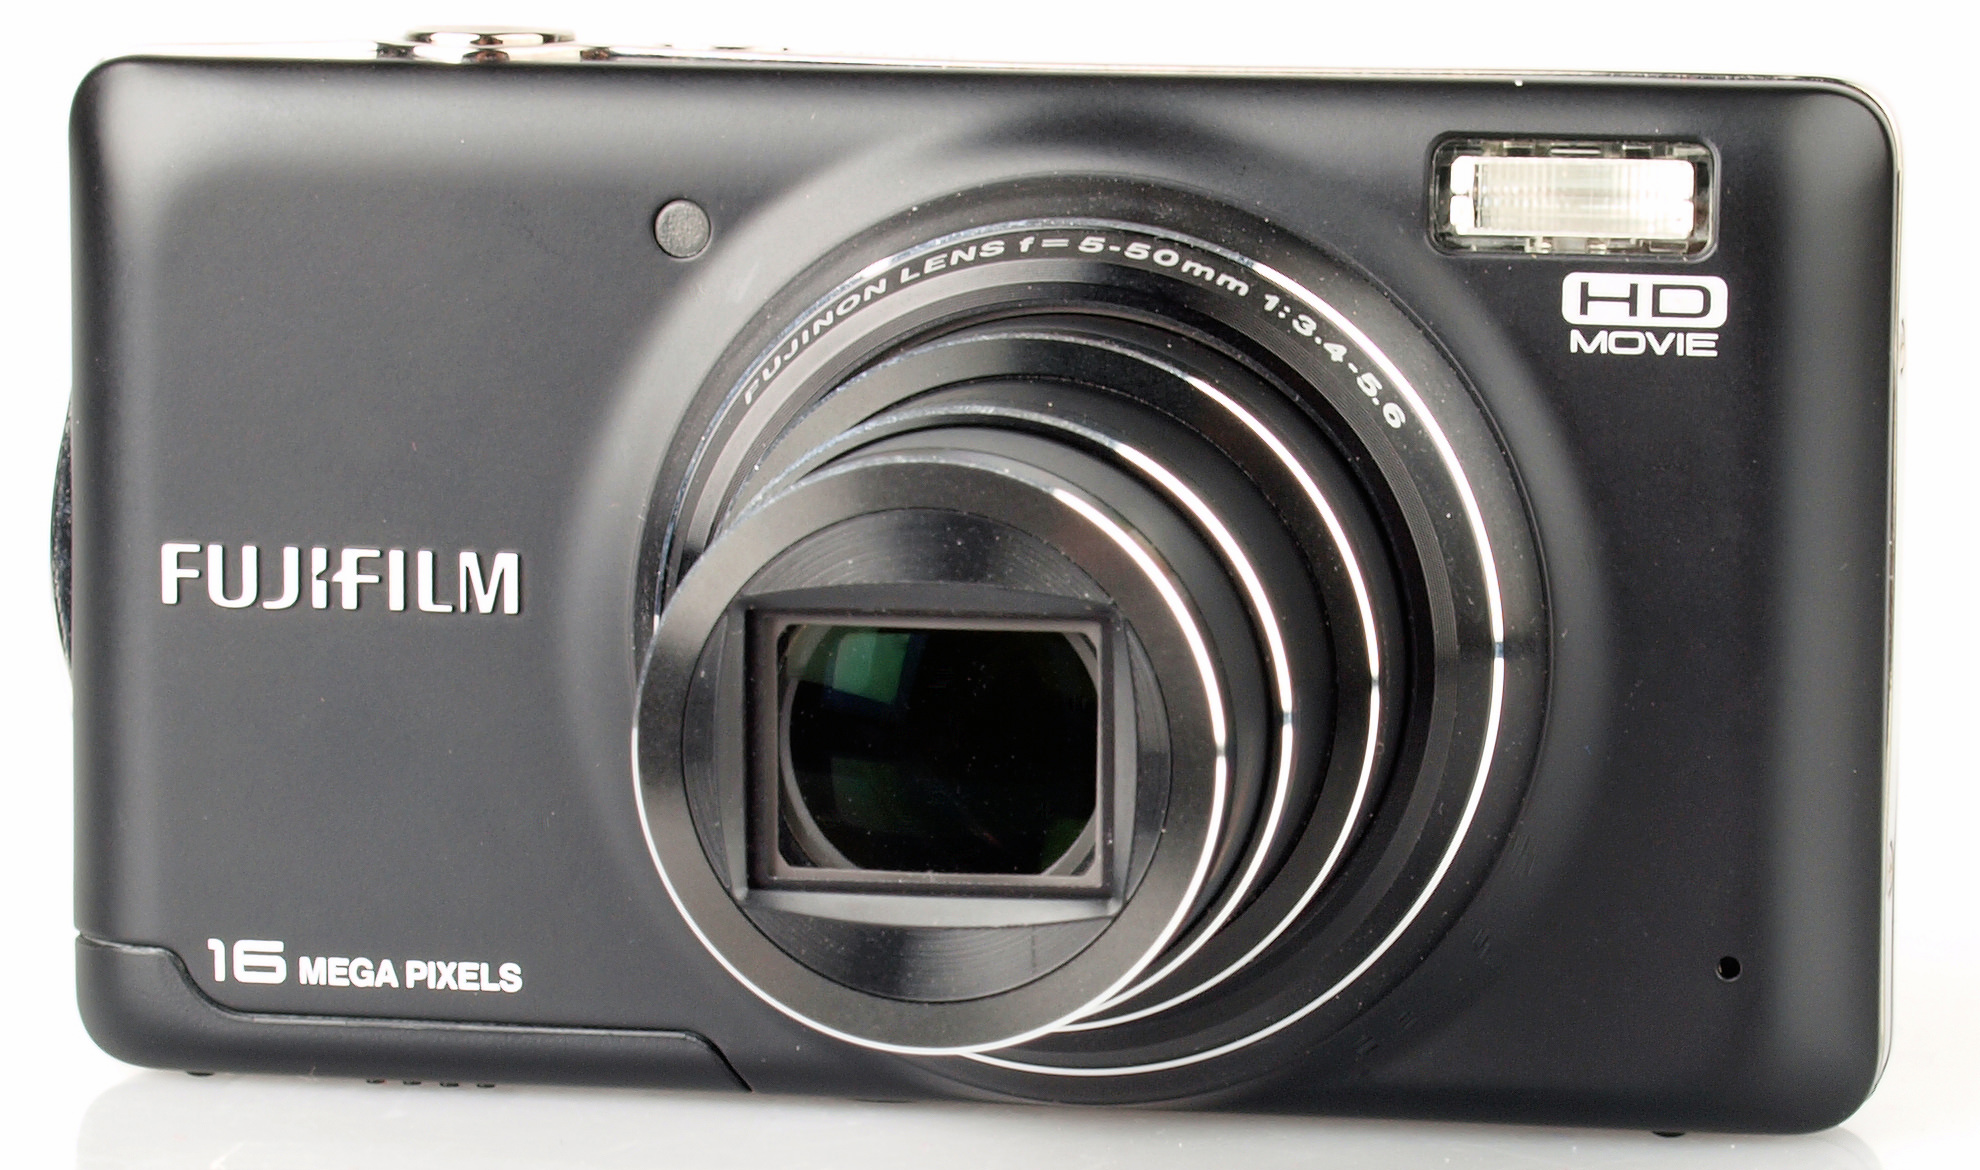 Fuji Fuji Fujifilm Finepix T400 Digital Camera Review